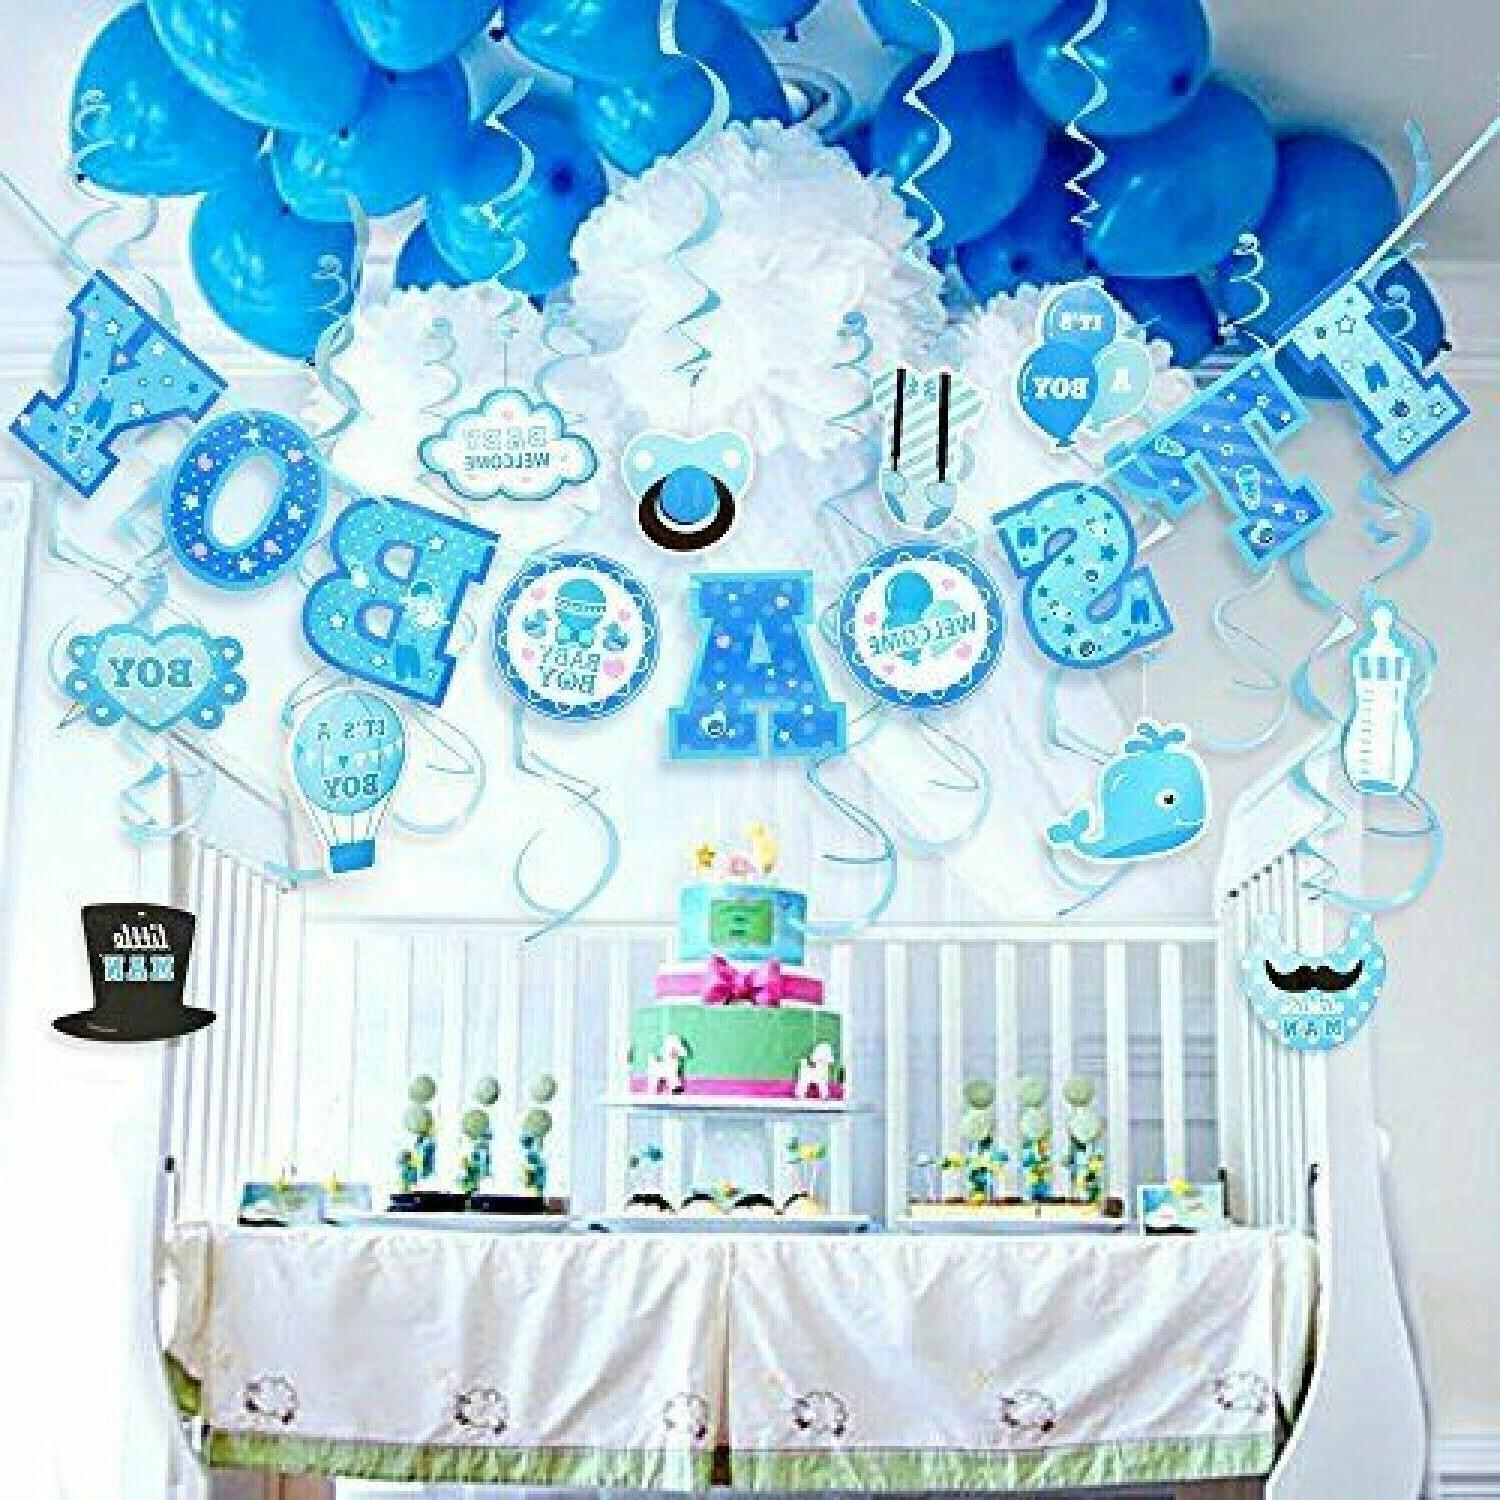 lucky party baby shower decorations for boy